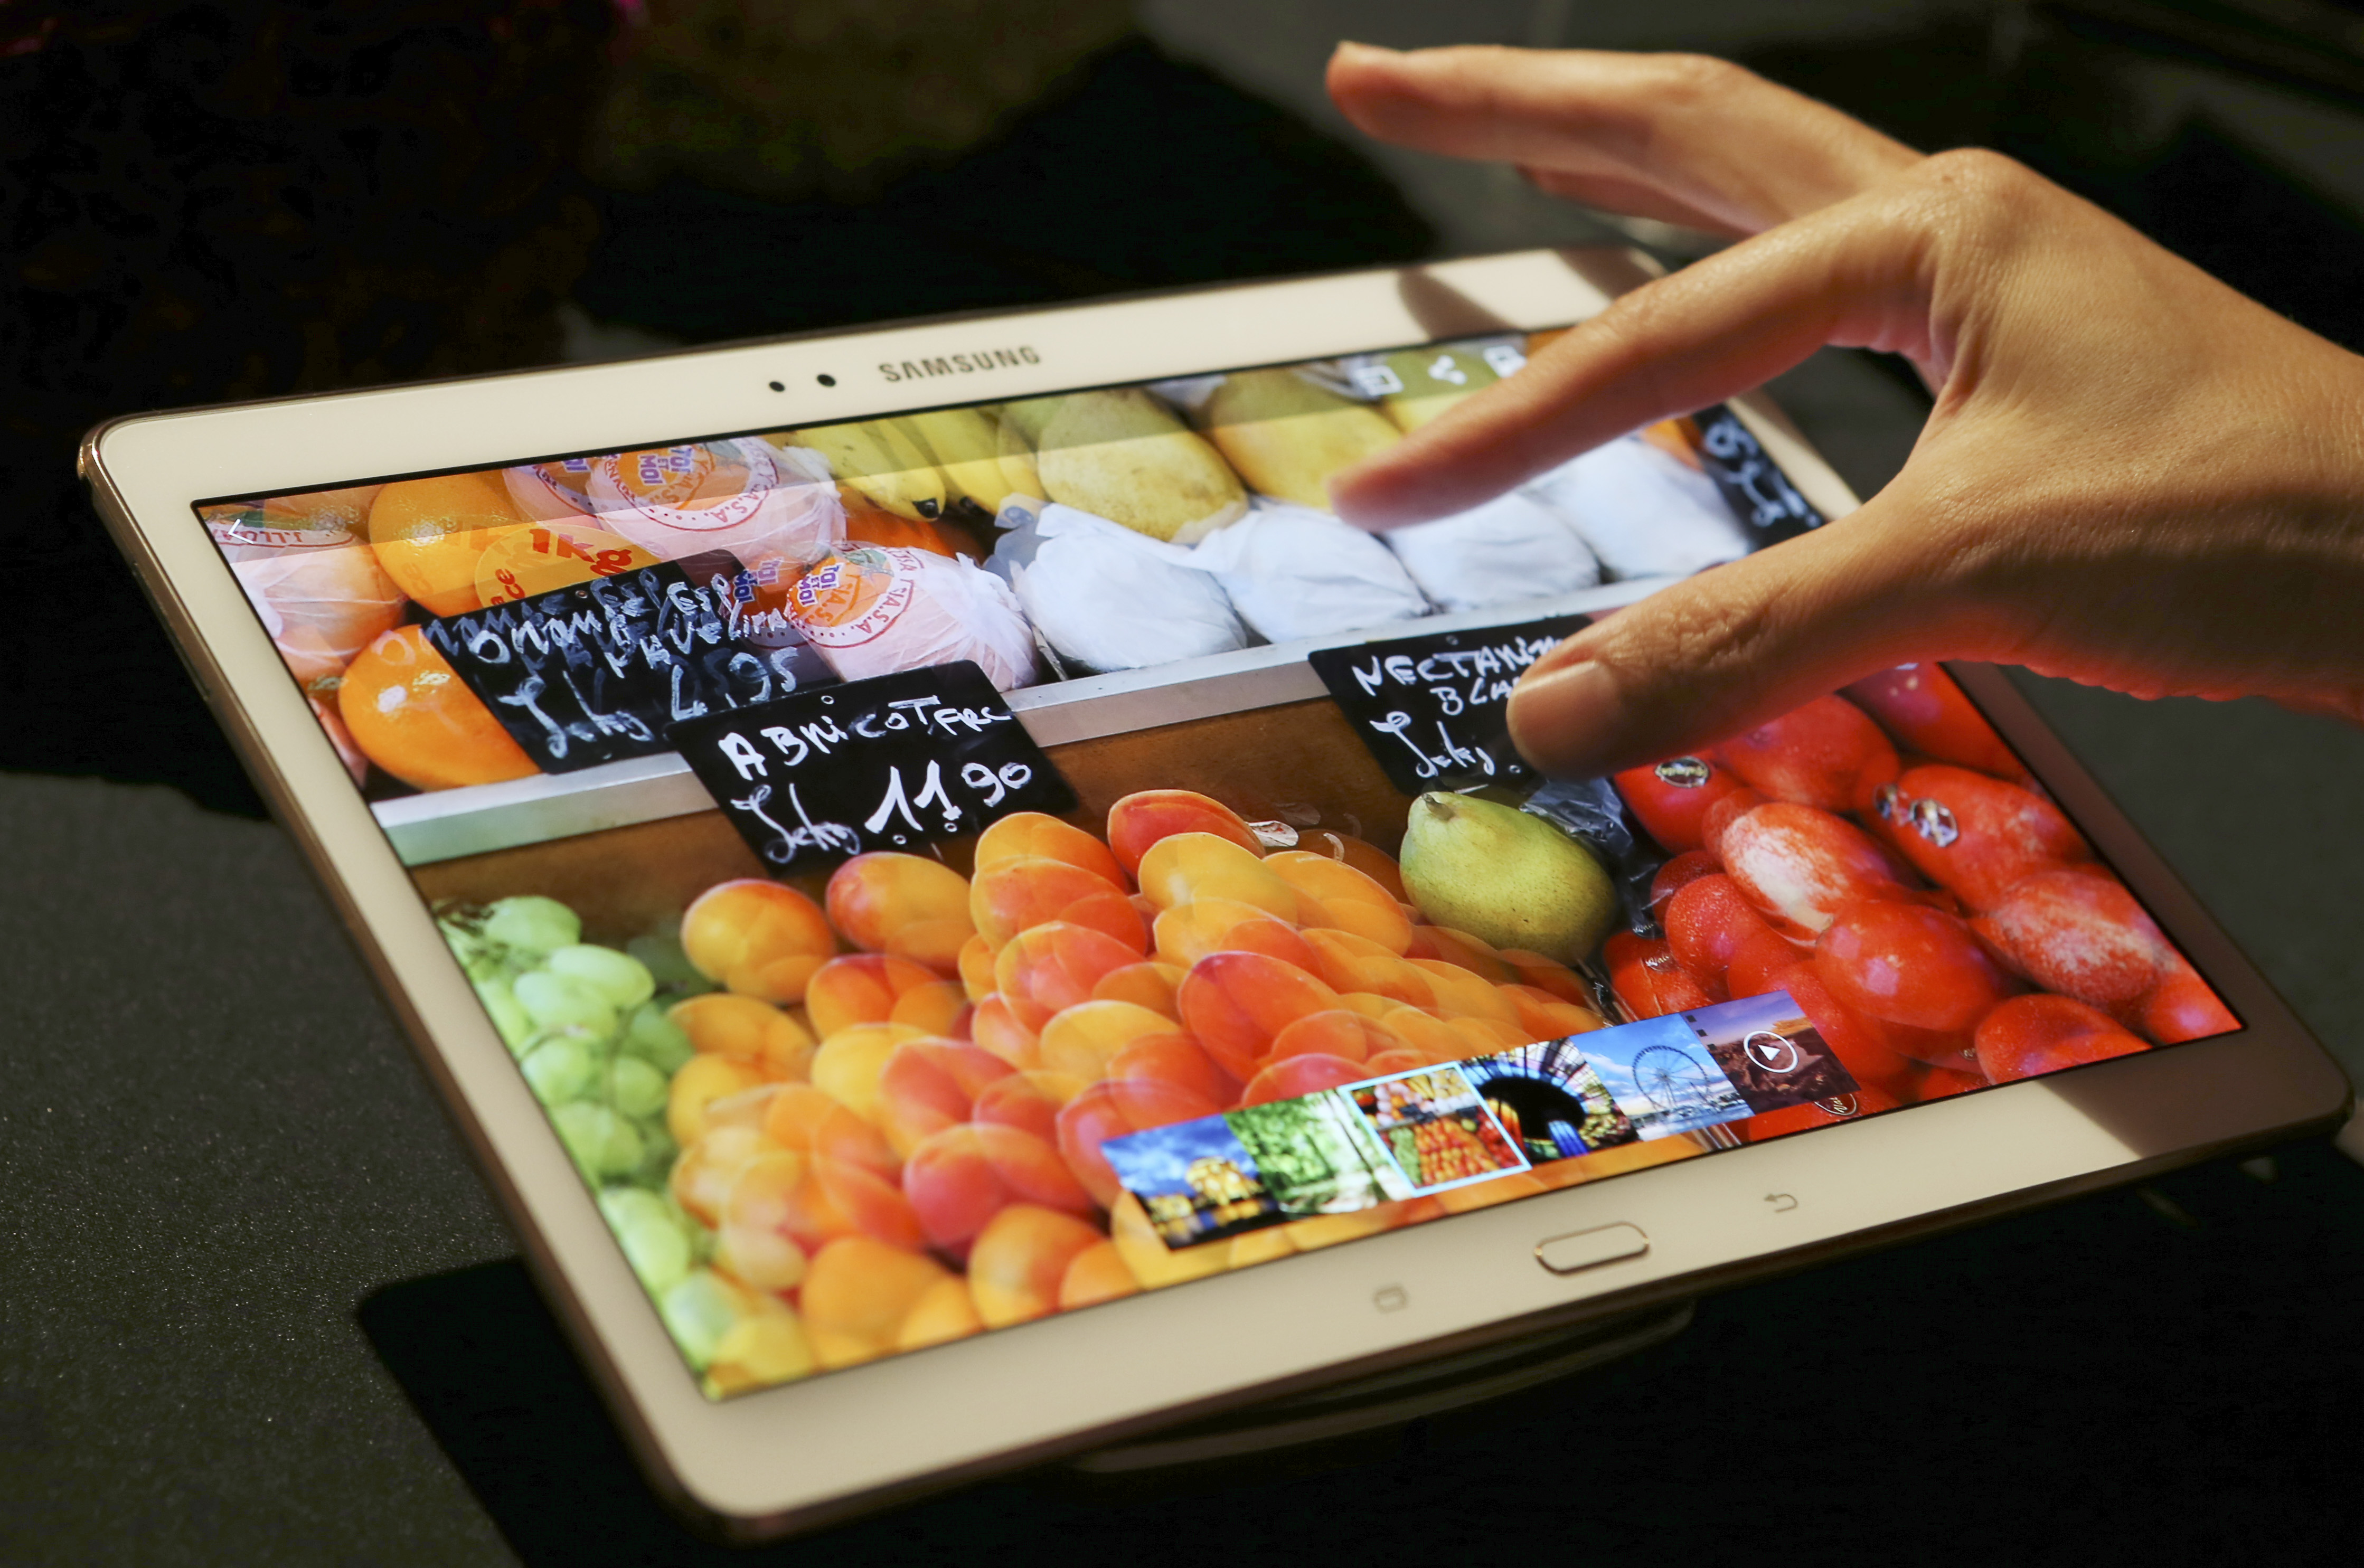 A visitor tries out Samsung Electronics Co.'s 10.5-inch Galaxy Tab S tablet during an event in Tokyo, Japan on July 31, 2014.